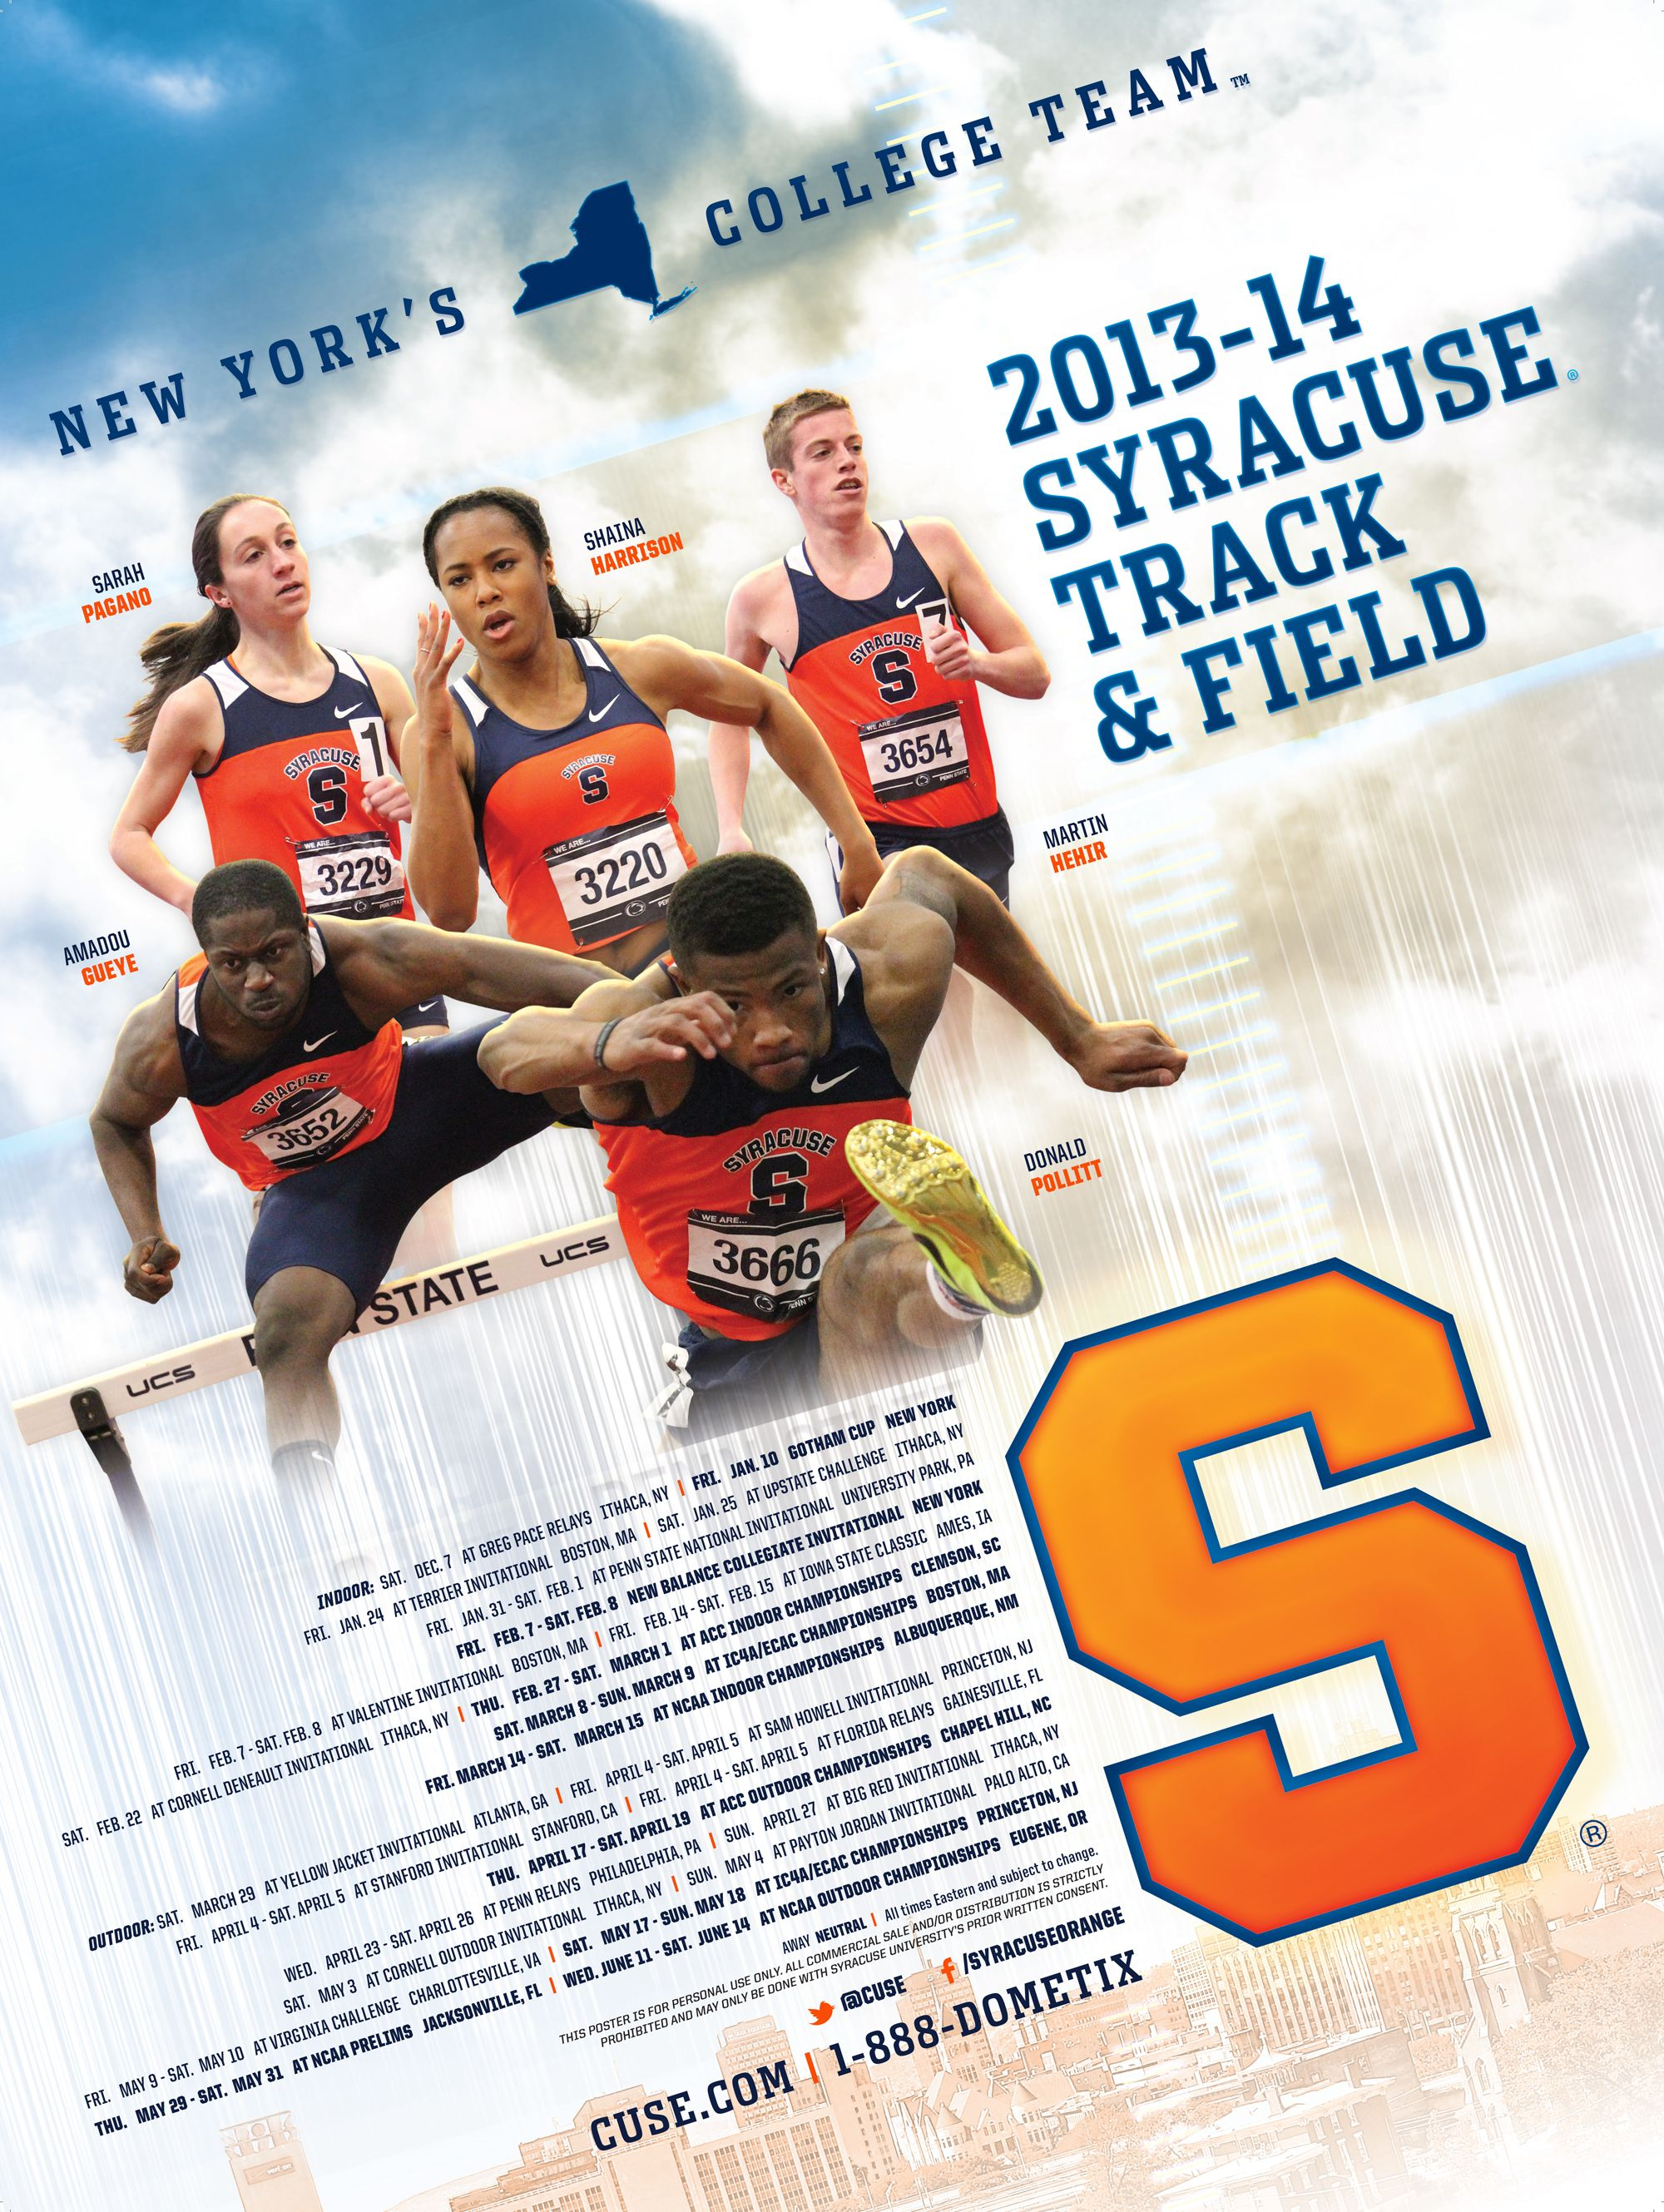 Syracuse Track & Field 2014 poster Track and field